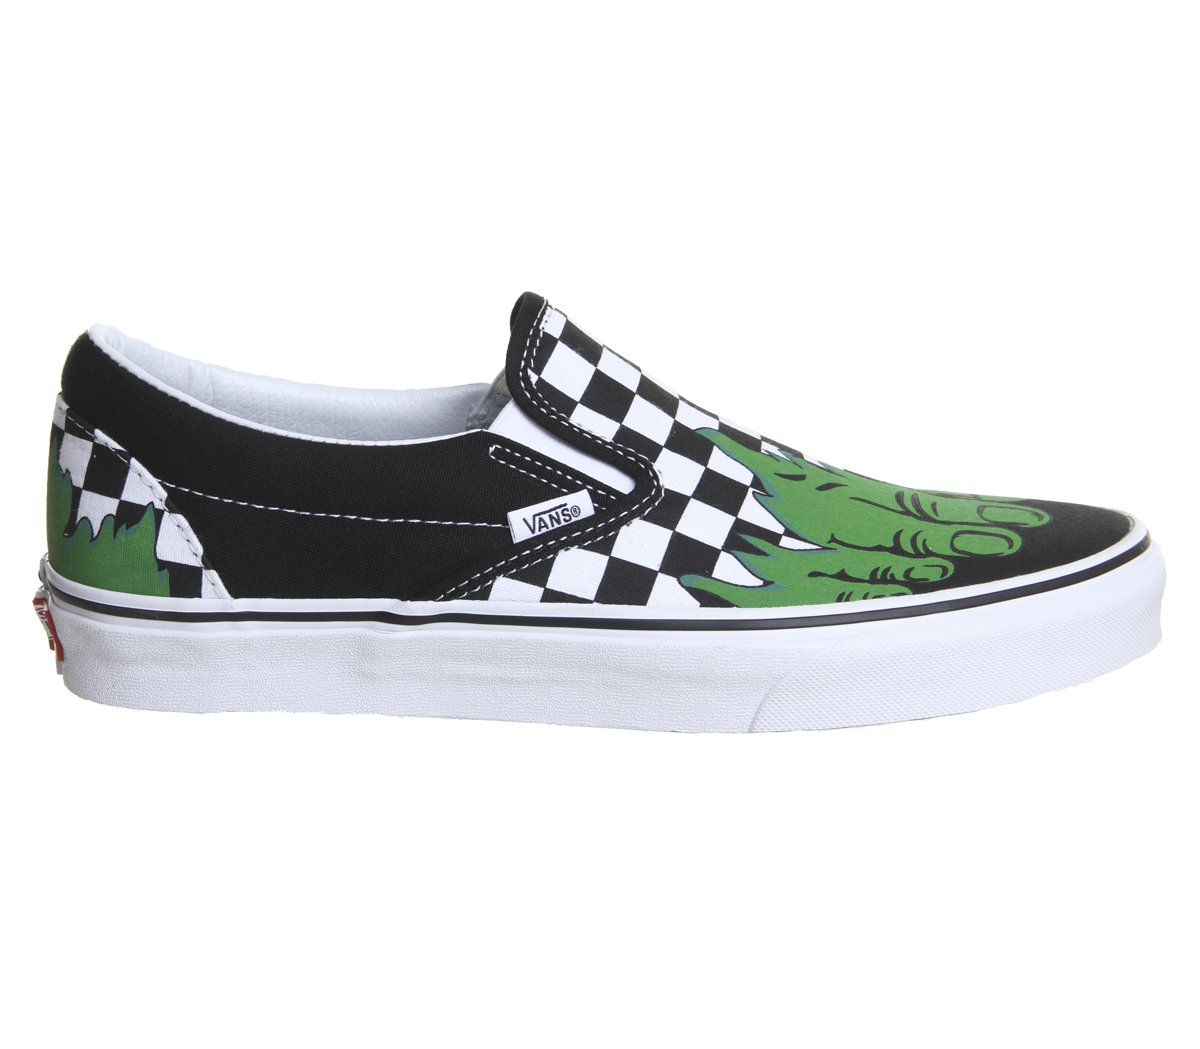 Vans Unisex Classic (Checkerboard) Slip-On Skate Shoe B077T6544P 13.5 B(M) US Women / 12 D(M) US Men|(Marvel) Hulk/Checkerboard